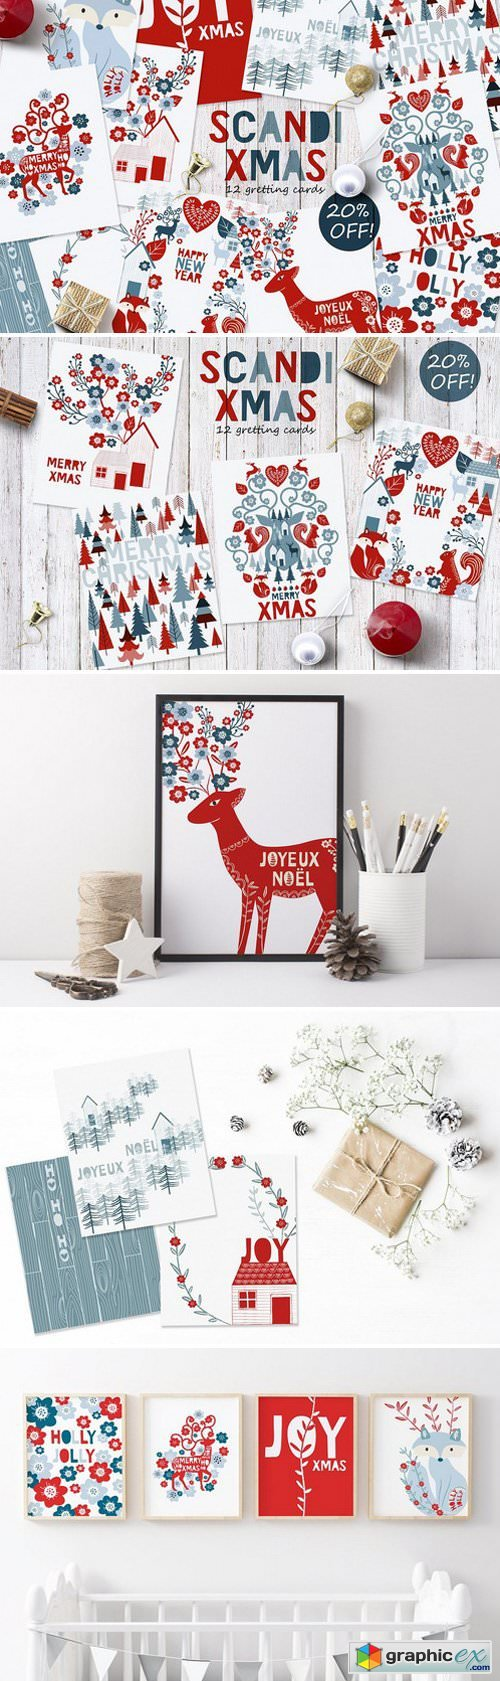 Scandi greeting cards